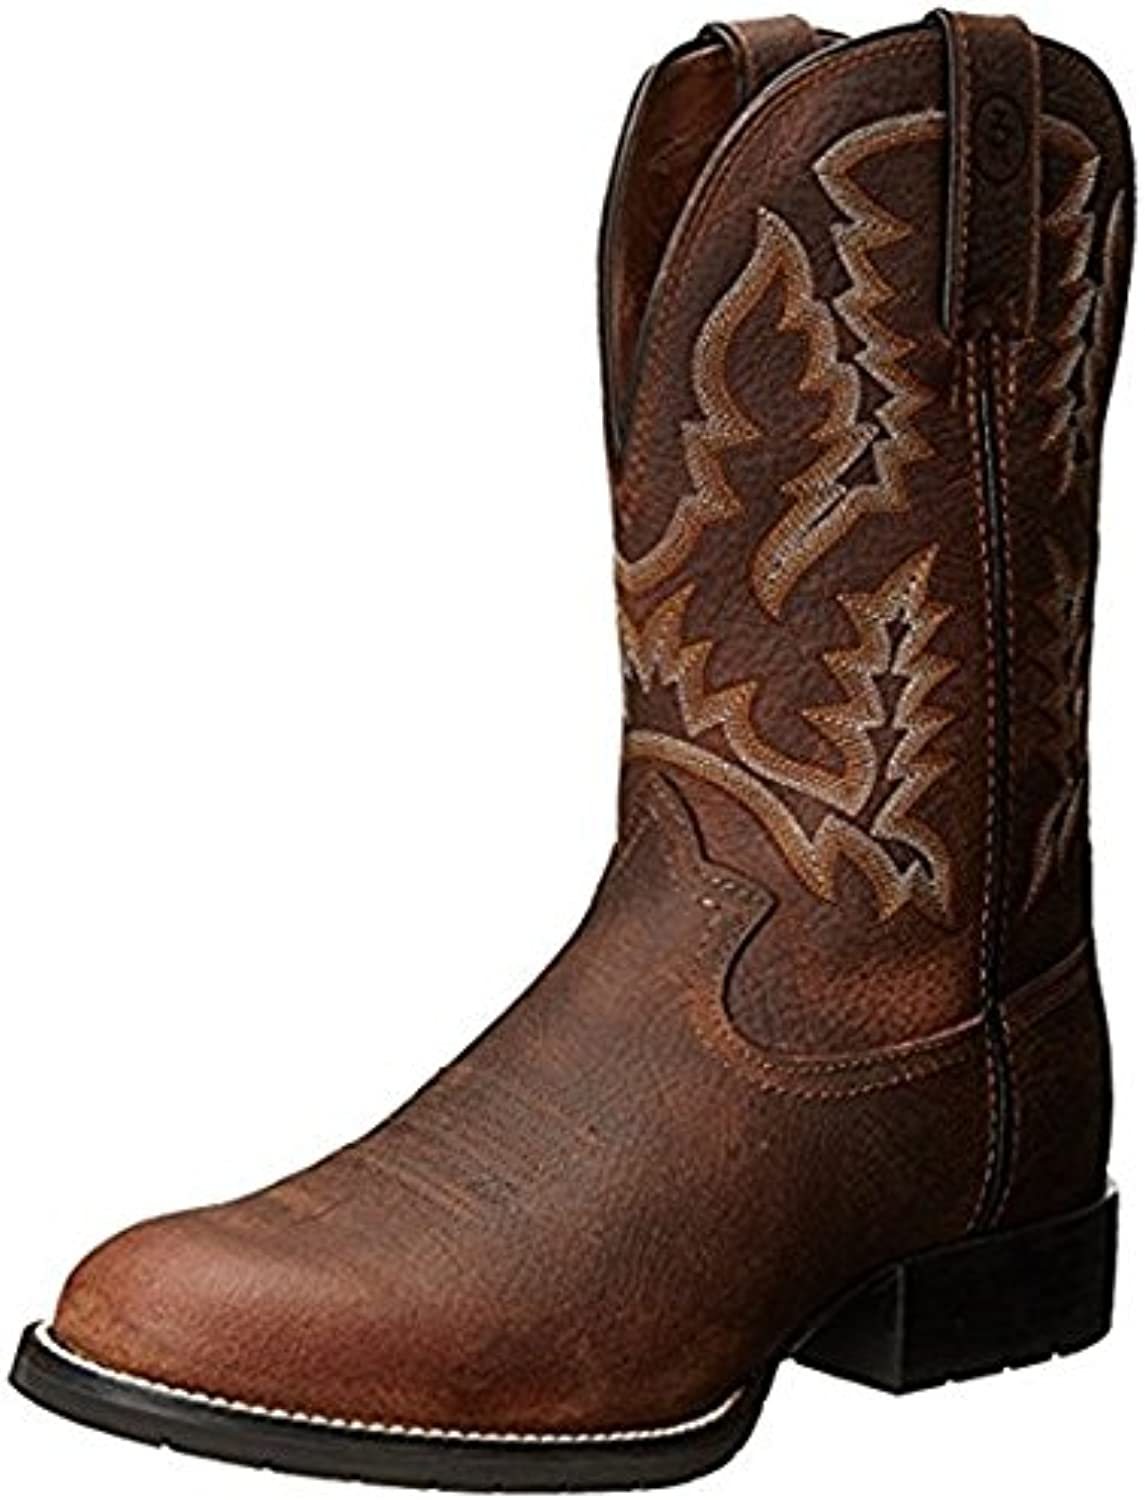 Tony Lama Men's CORING 11  Height (RR3214)   Foot Brown Pitstop   Pullon Western Boots   Browns Cowboy Leather Boot   Handcrafted in The USA